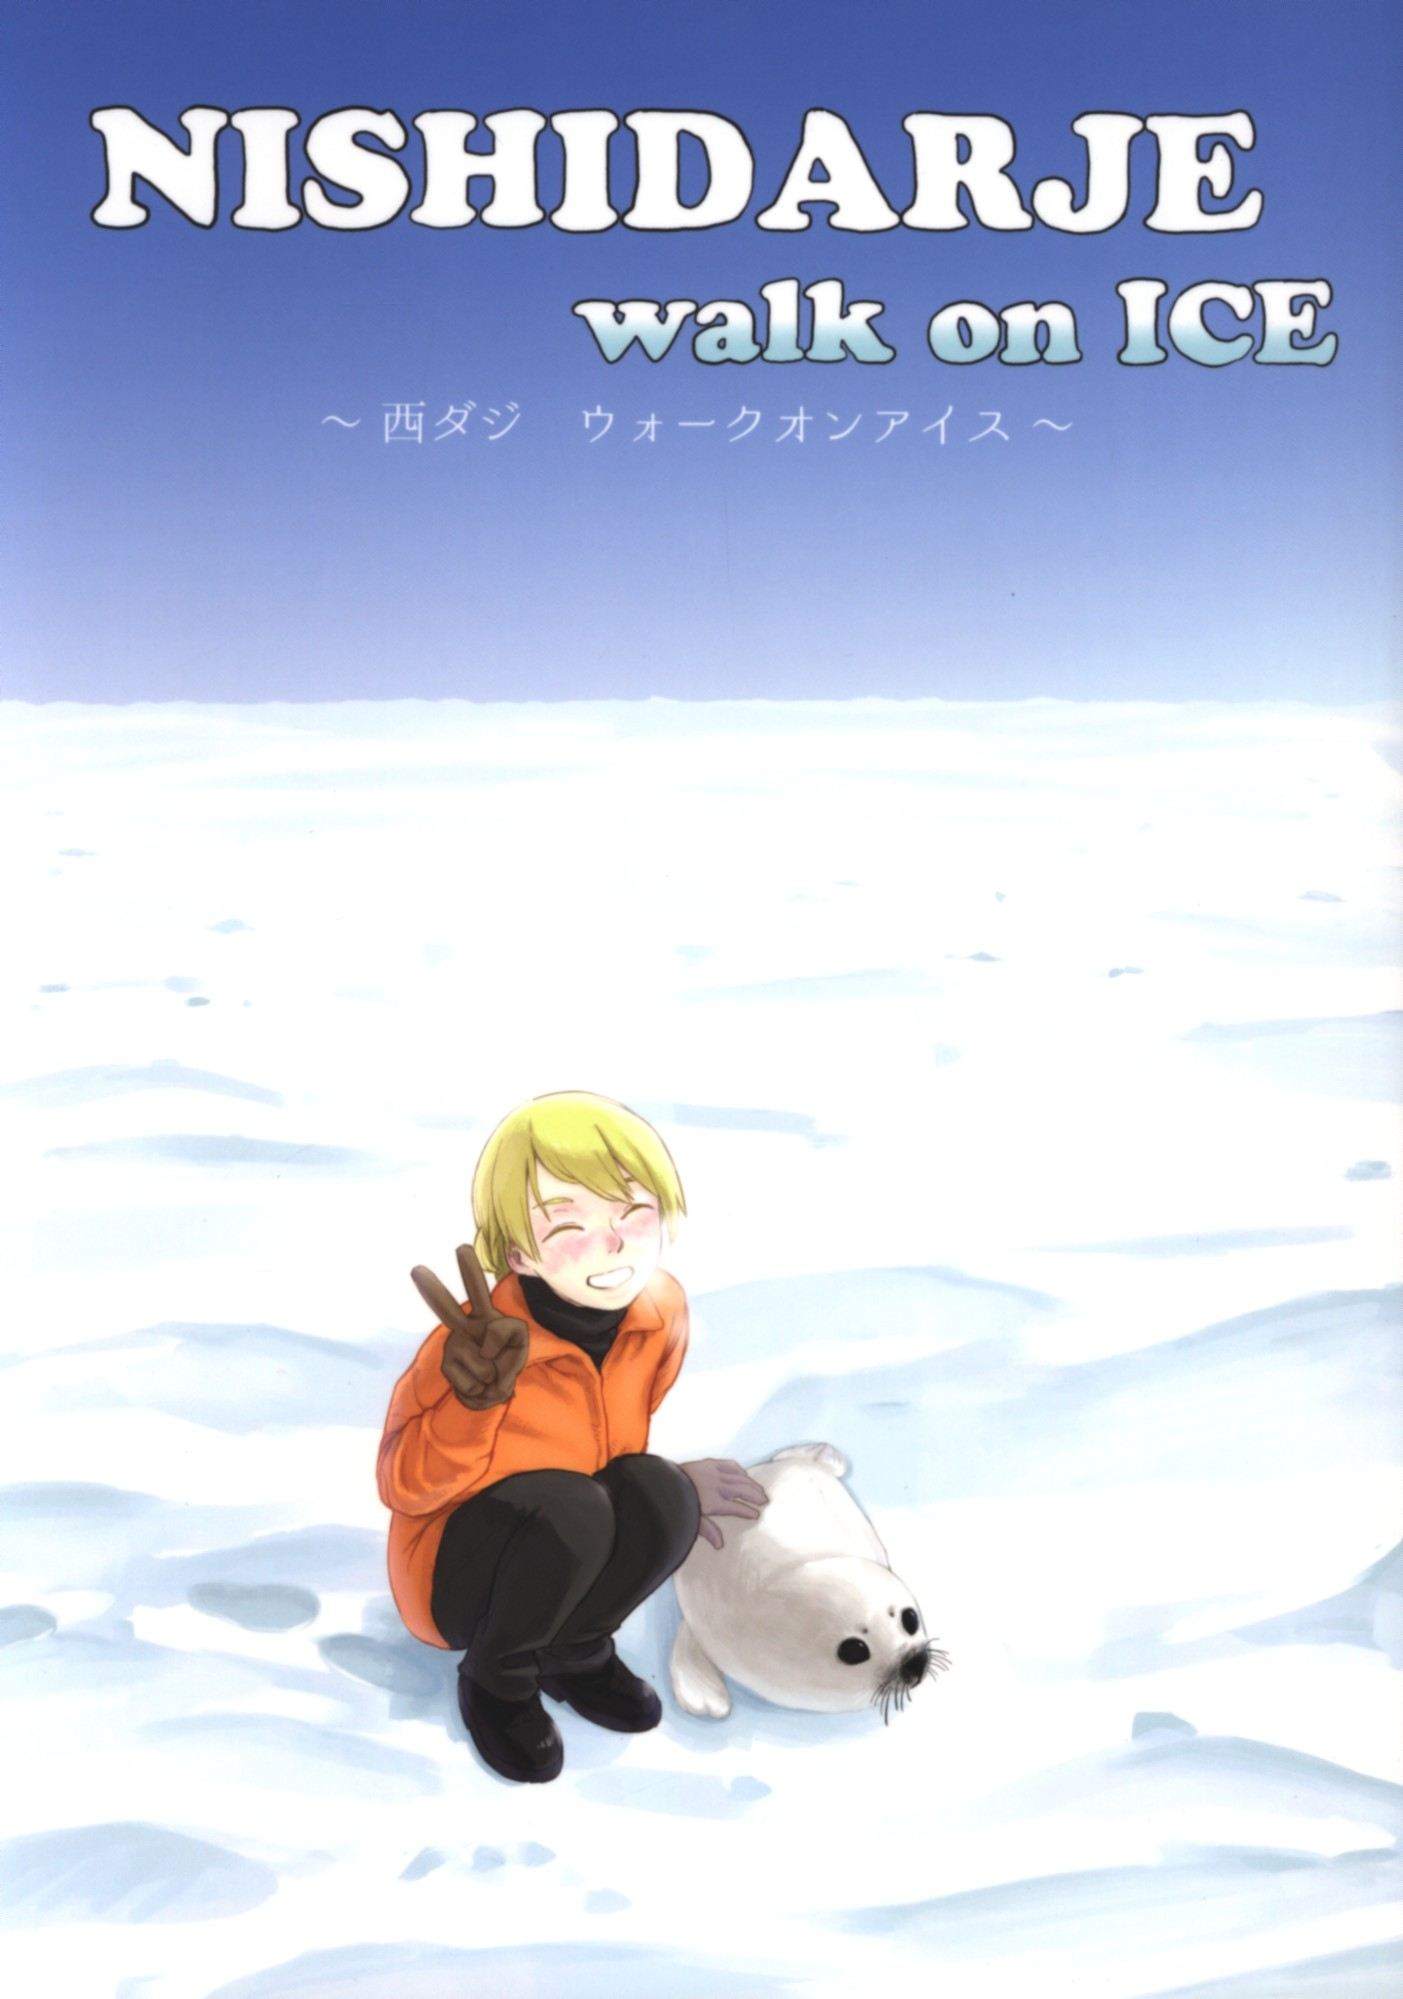 Doujinshi - GIRLS-und-PANZER / Darjeeling (NISHIDARJE walk on ICE) / サークル和三盆